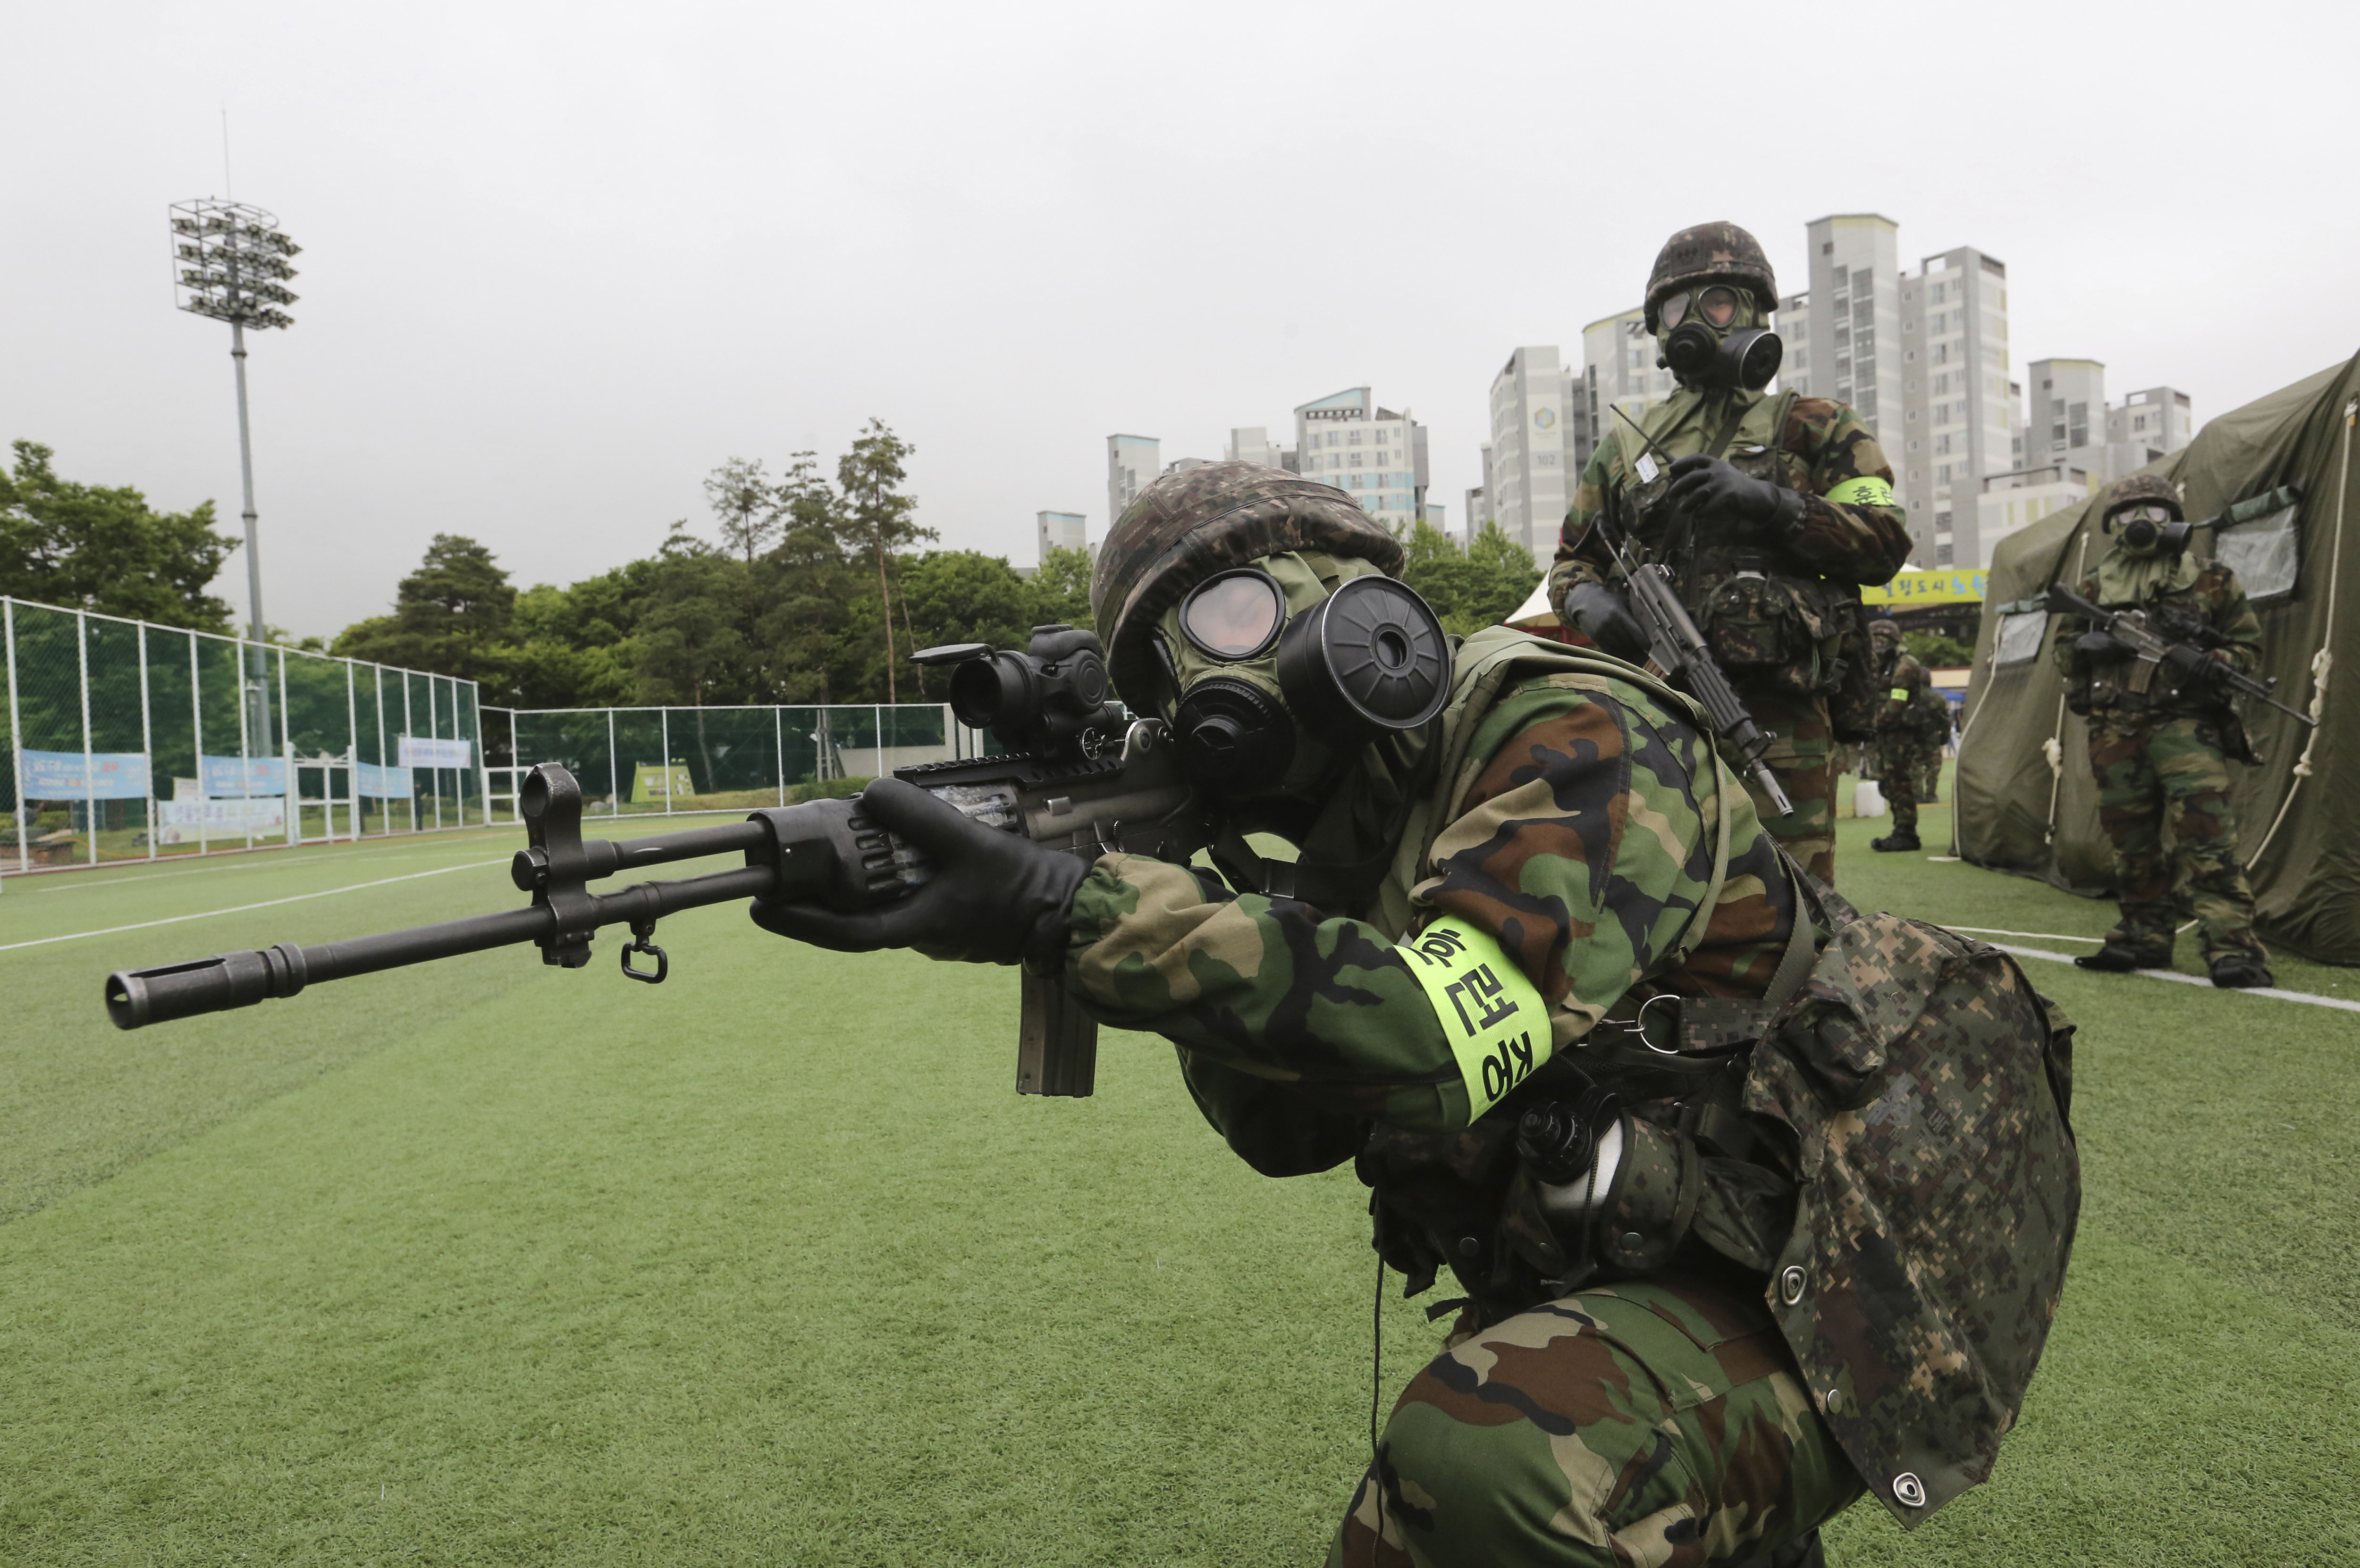 A ROK army soldier aims his machine gun during an anti-terror drill as part of the Ulchi Taeguk exercise at a park in Seoul, South Korea, Monday, May 27, 2019. The four-day exercises will include massive civilian evacuation drills and a South Korea-only military drill aimed at preparing for war situations and disasters. (AP Photo/Ahn Young-joon)